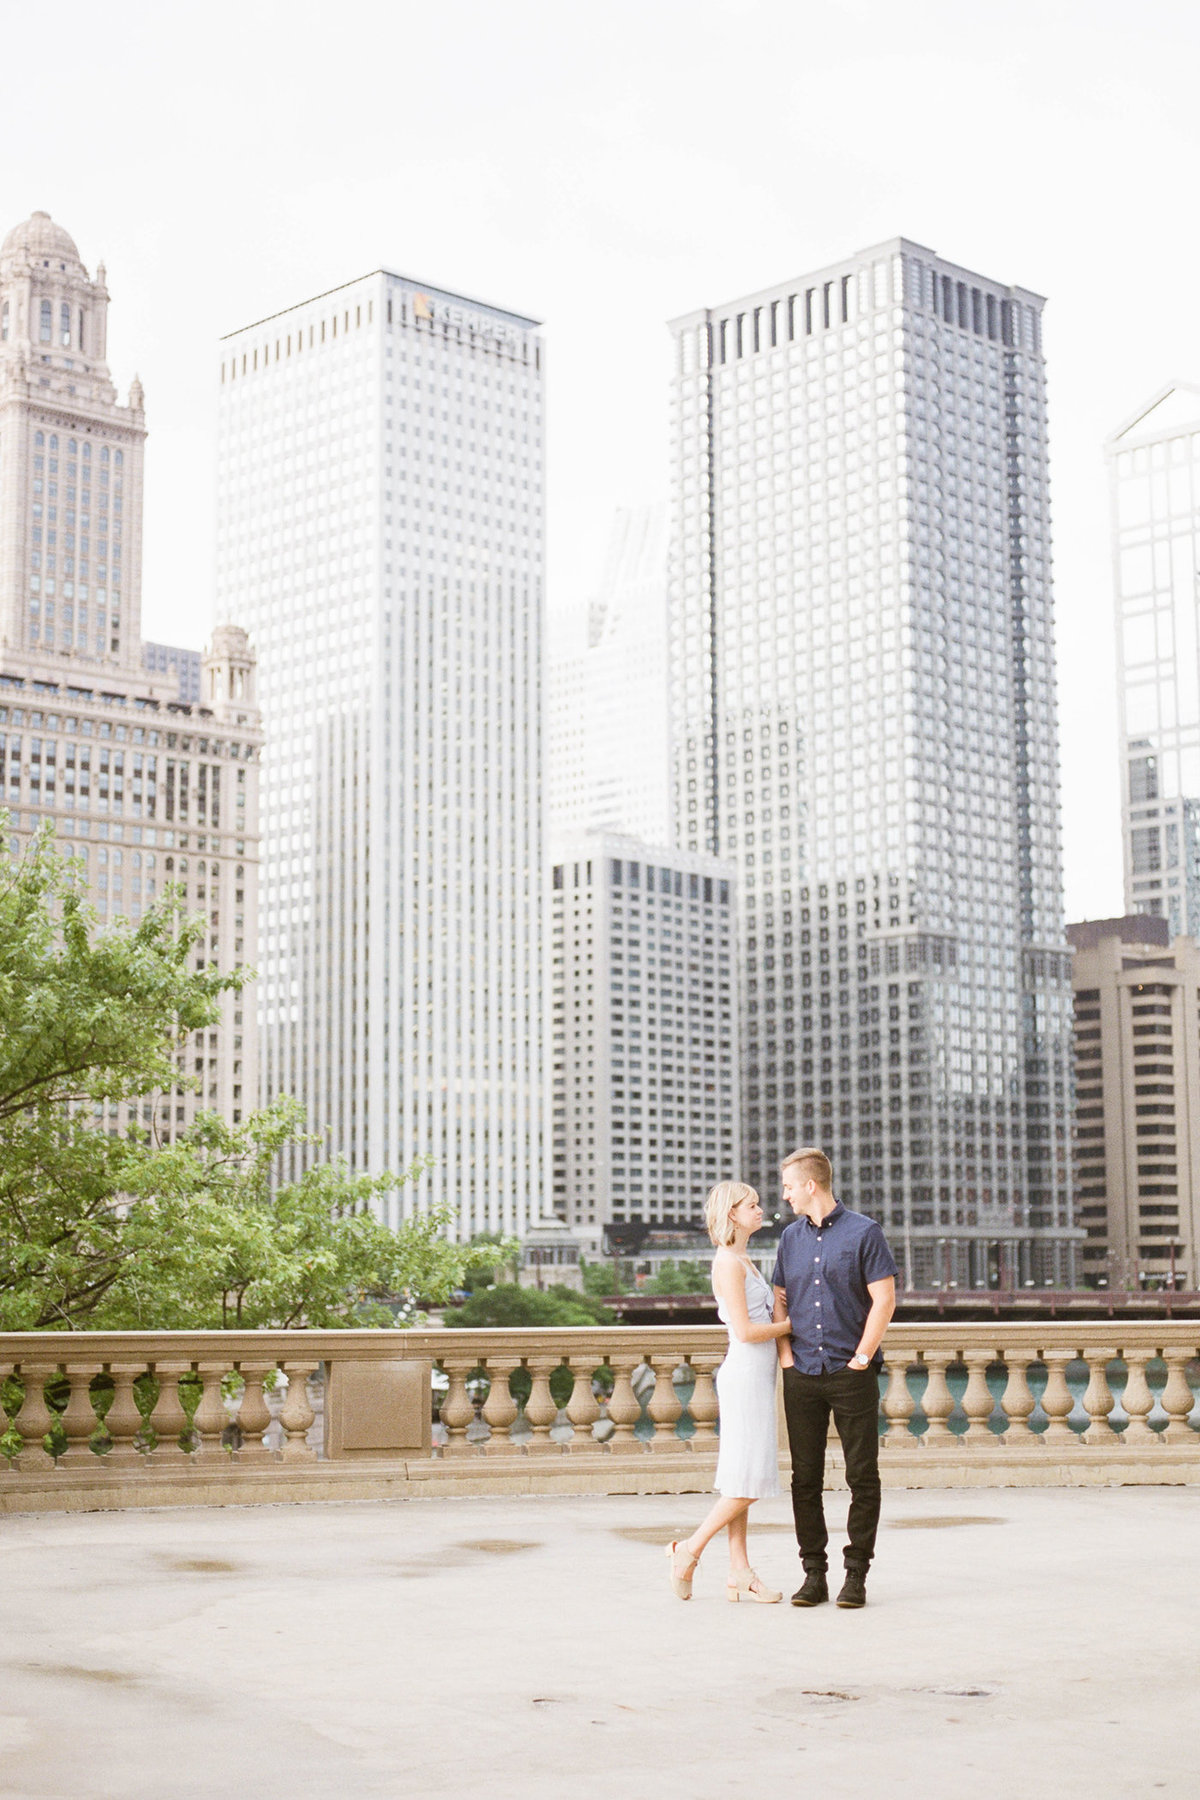 Chicago Wedding Photographer - Fine Art Film Photographer - Sarah Sunstrom - Sam + Morgan - Engagement Session - 13